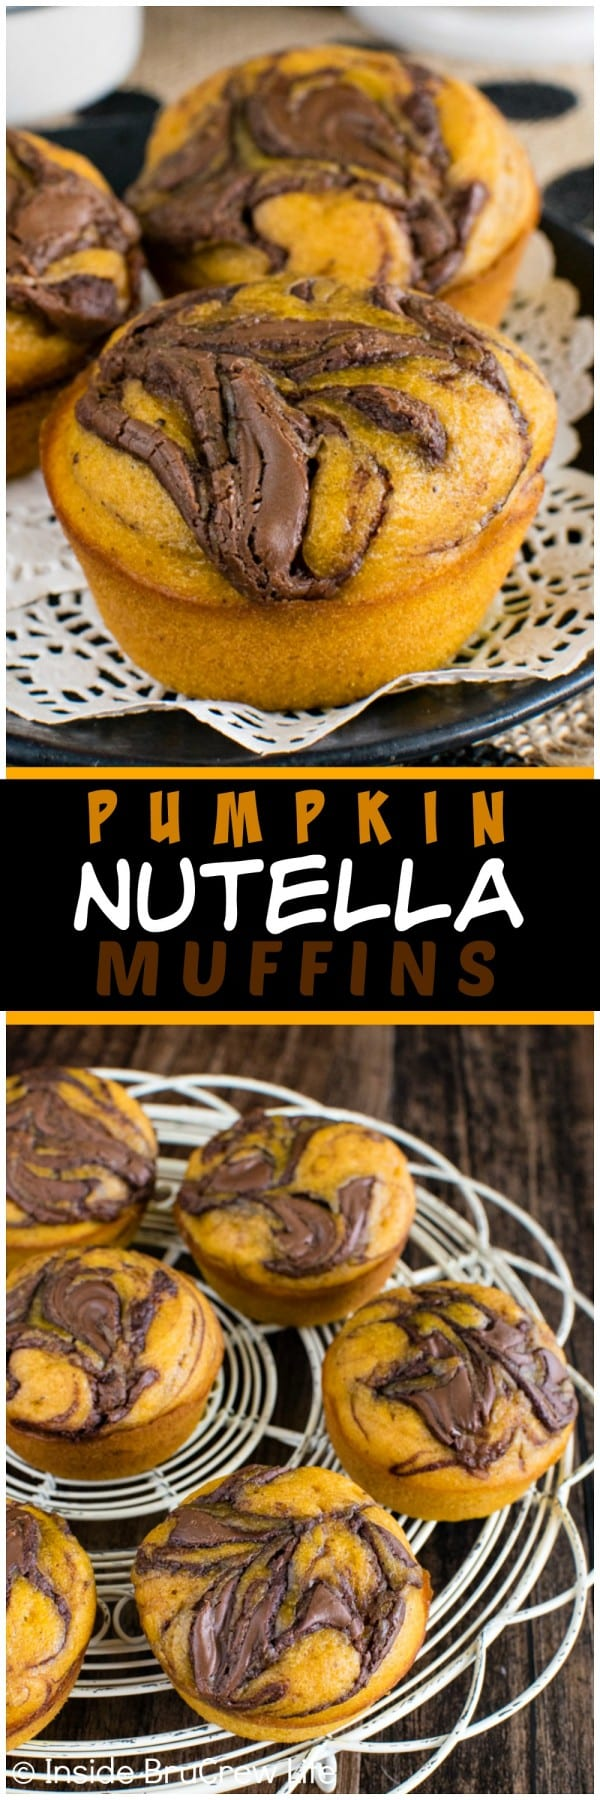 Pumpkin Nutella Muffins - soft pumpkin muffins with a chocolate swirl makes a delicious breakfast recipe for the fall